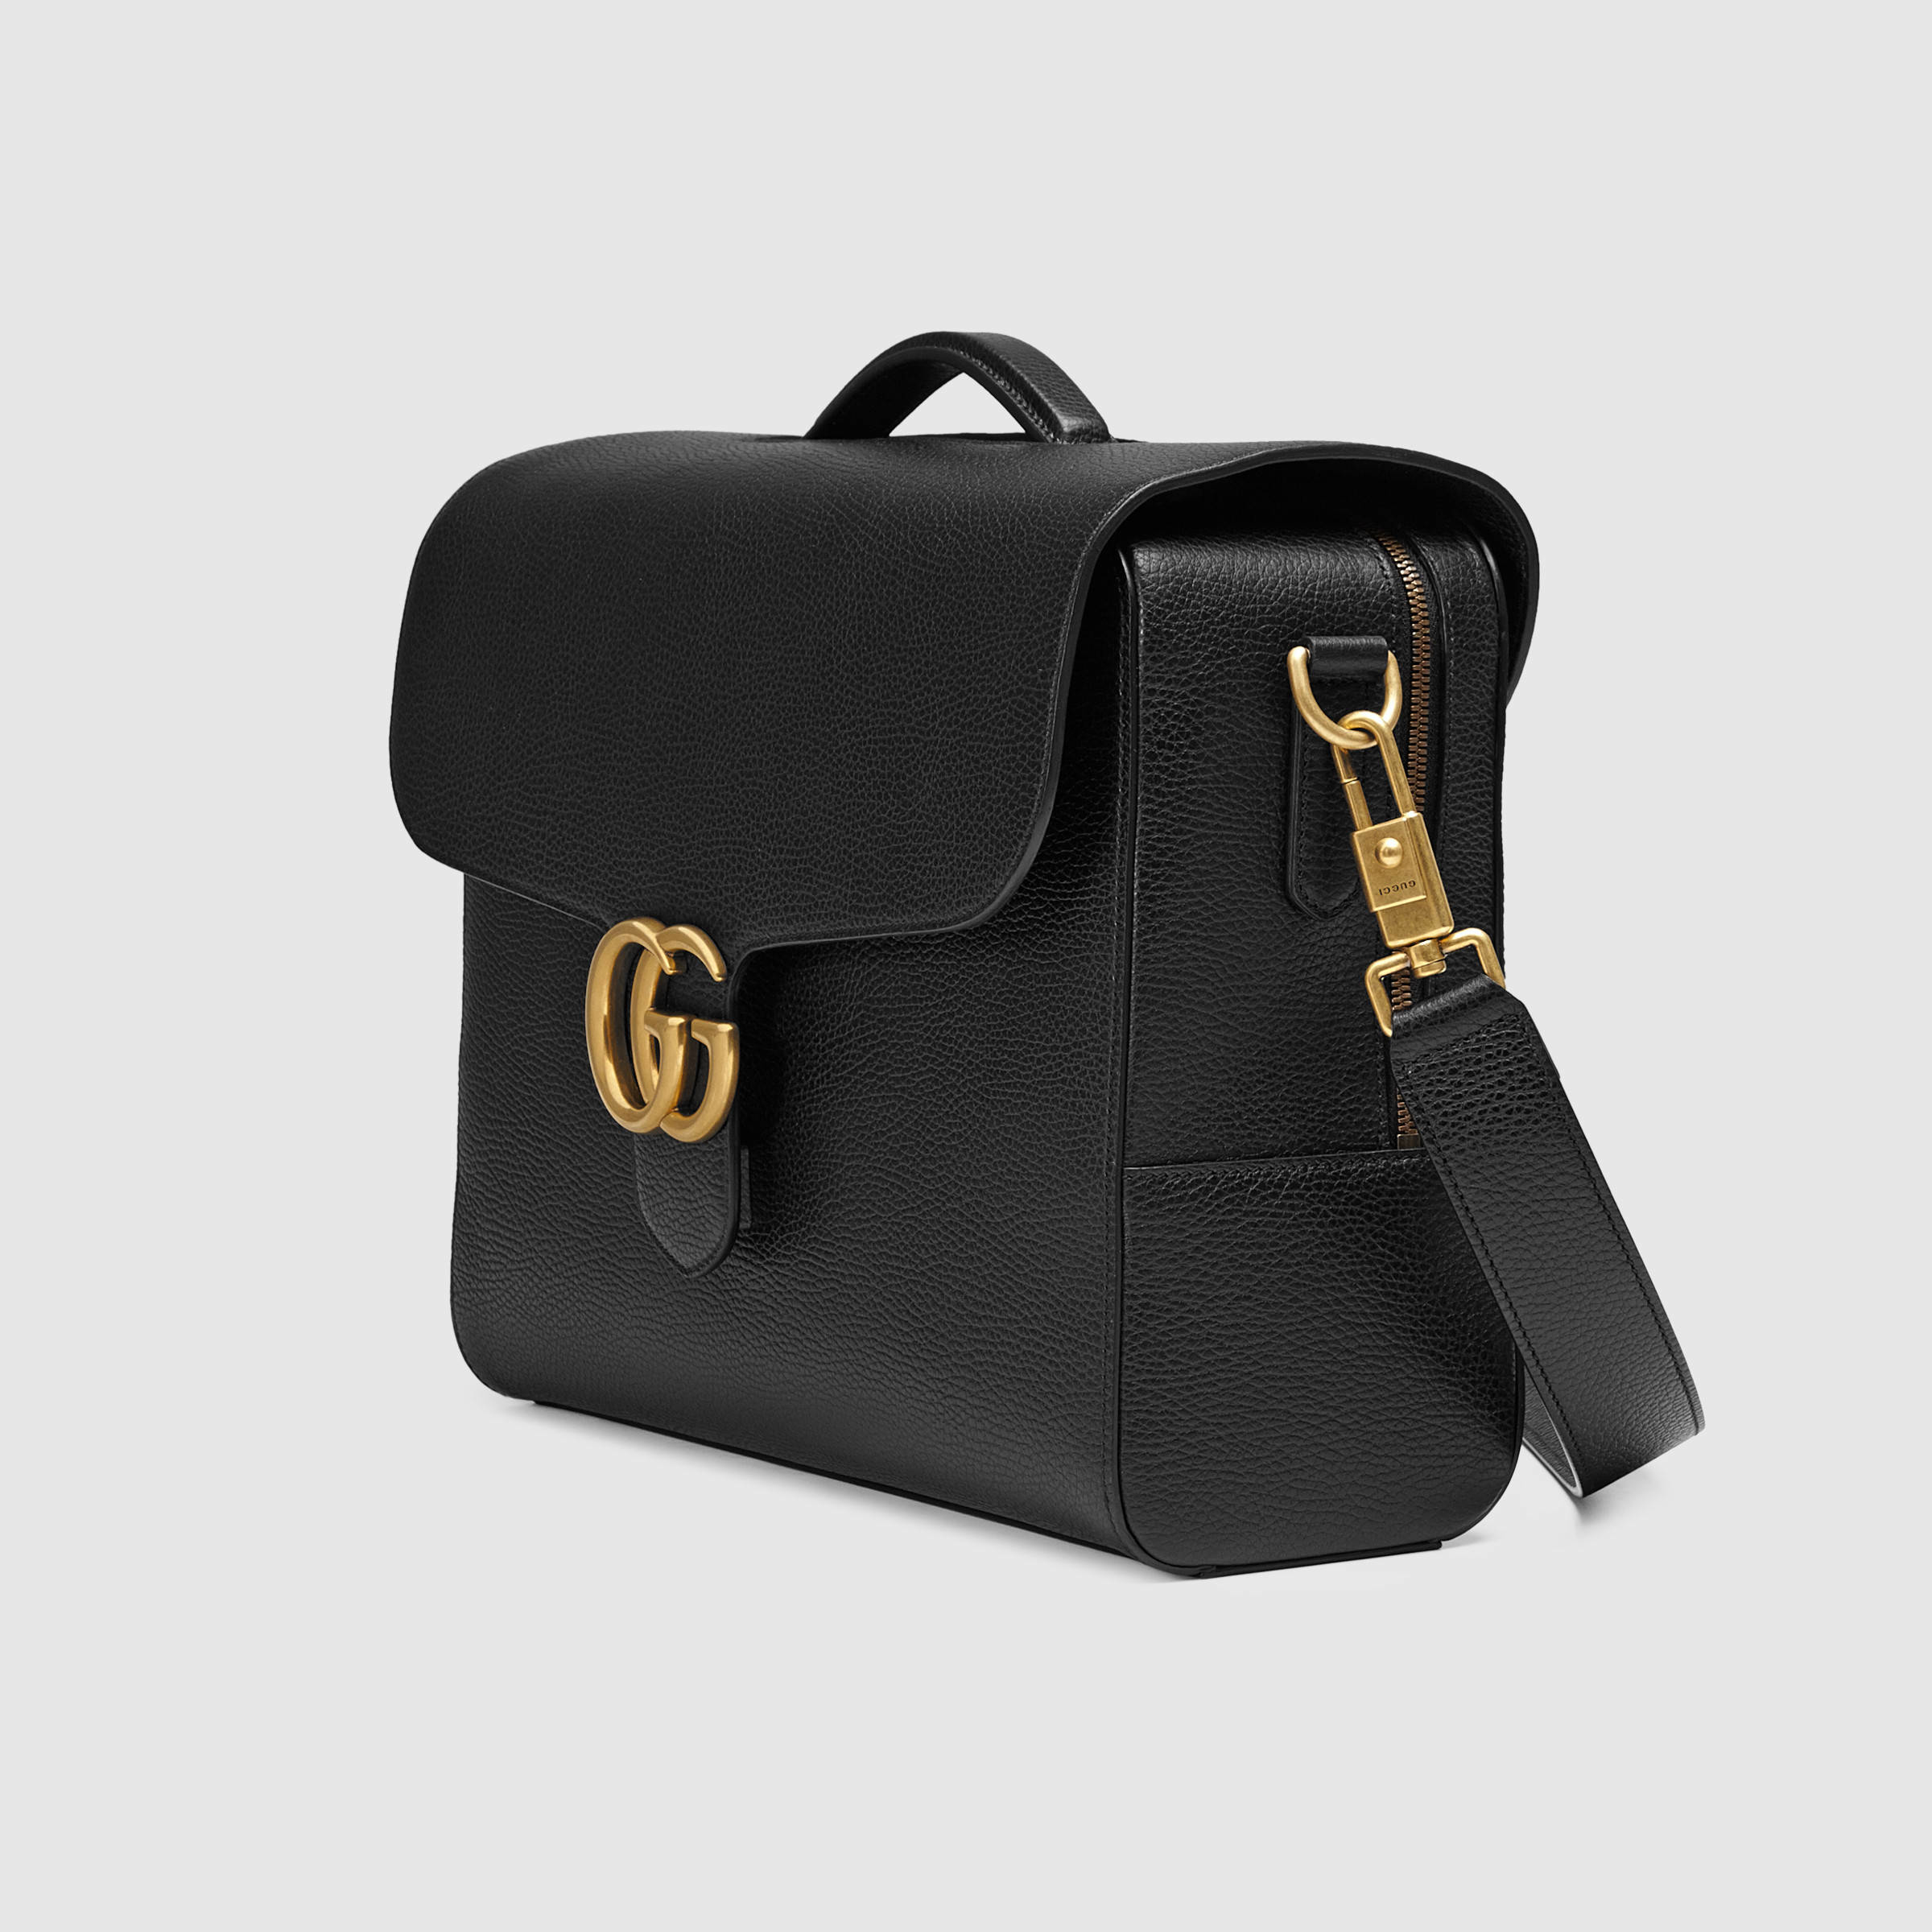 f890581d8e92 Gucci Gg Marmont Leather Briefcase for Men - Lyst